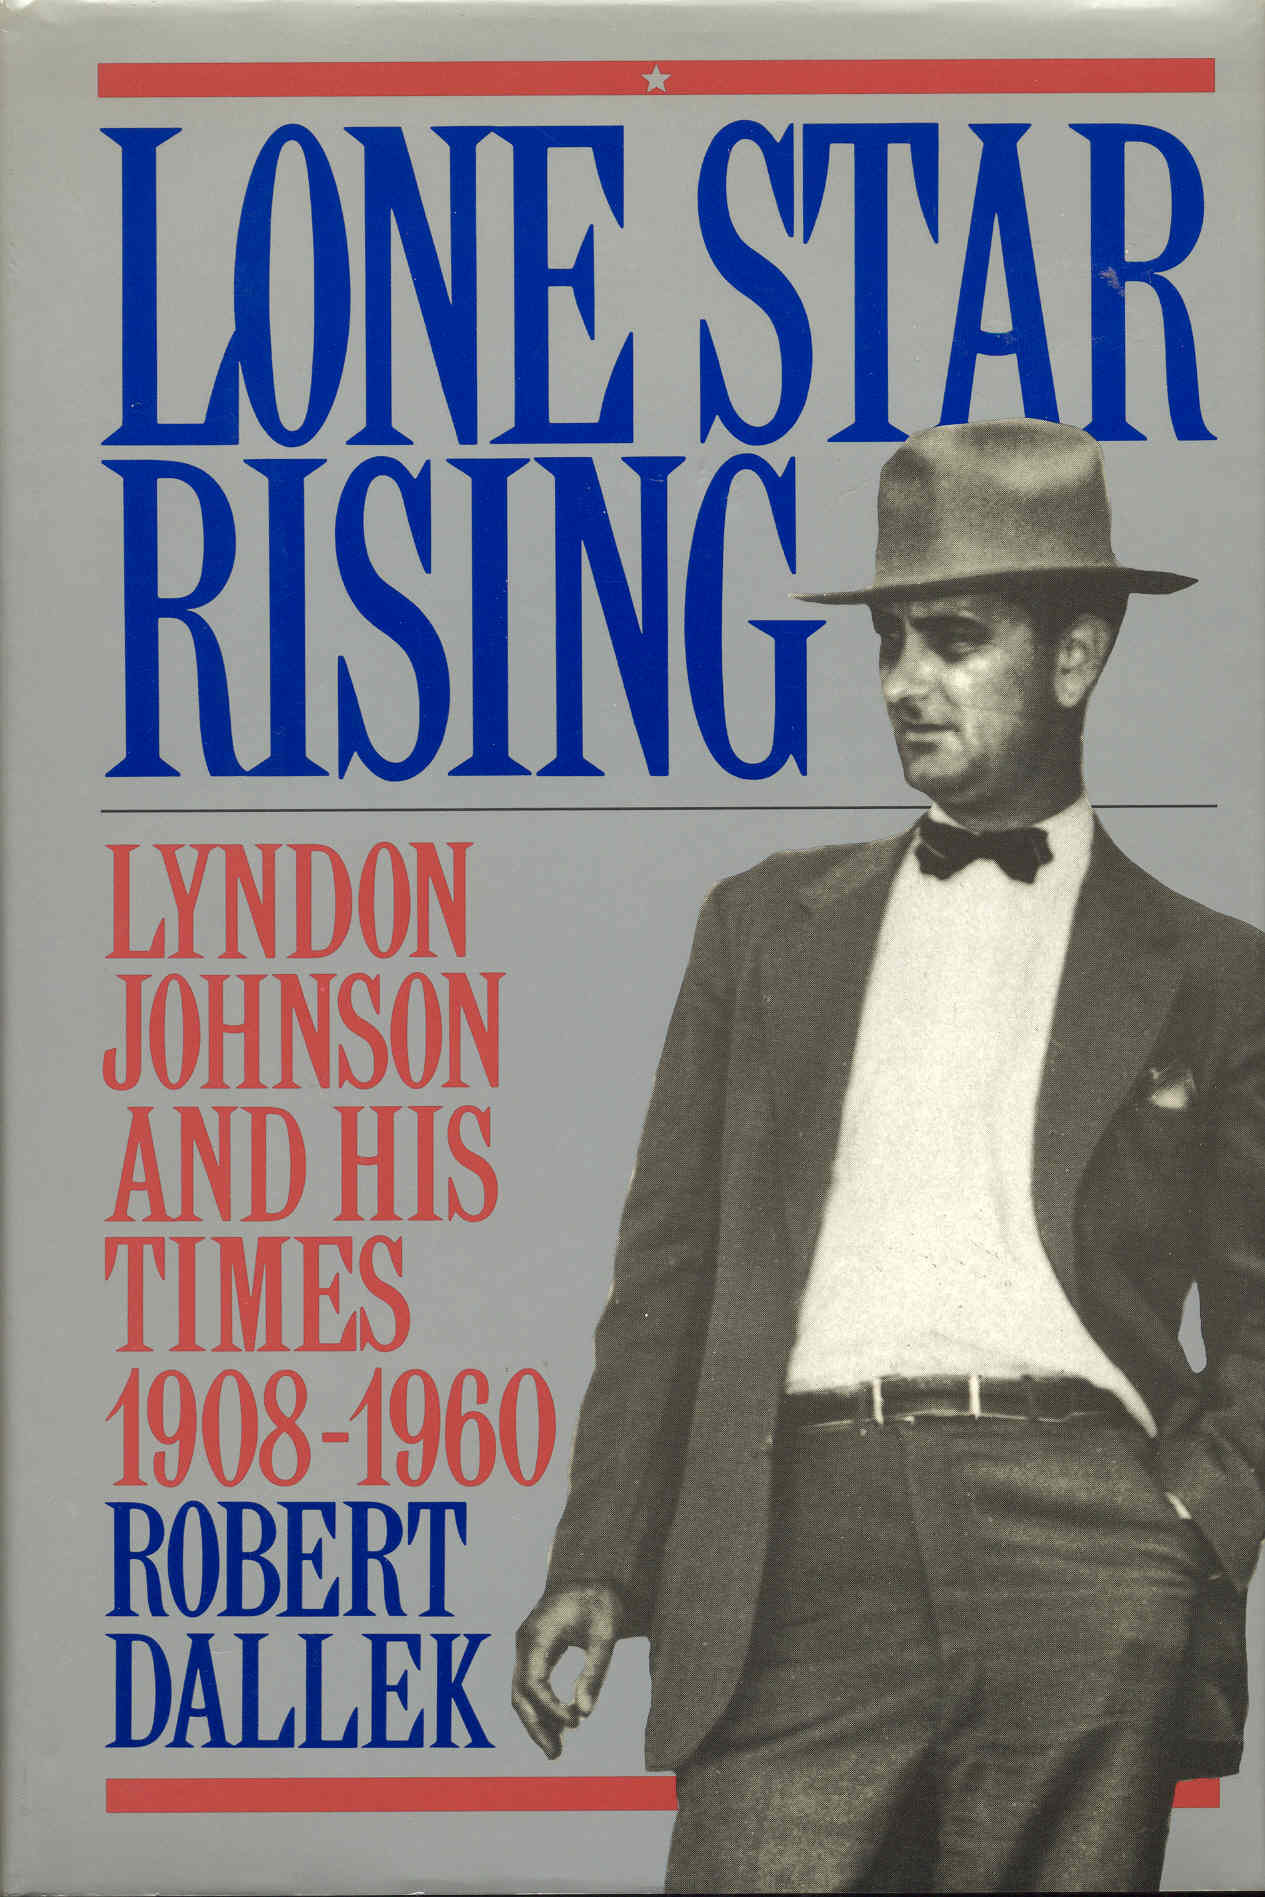 Image for Lone Star Rising: Lyndon Johnson and His Times, 1908-1960